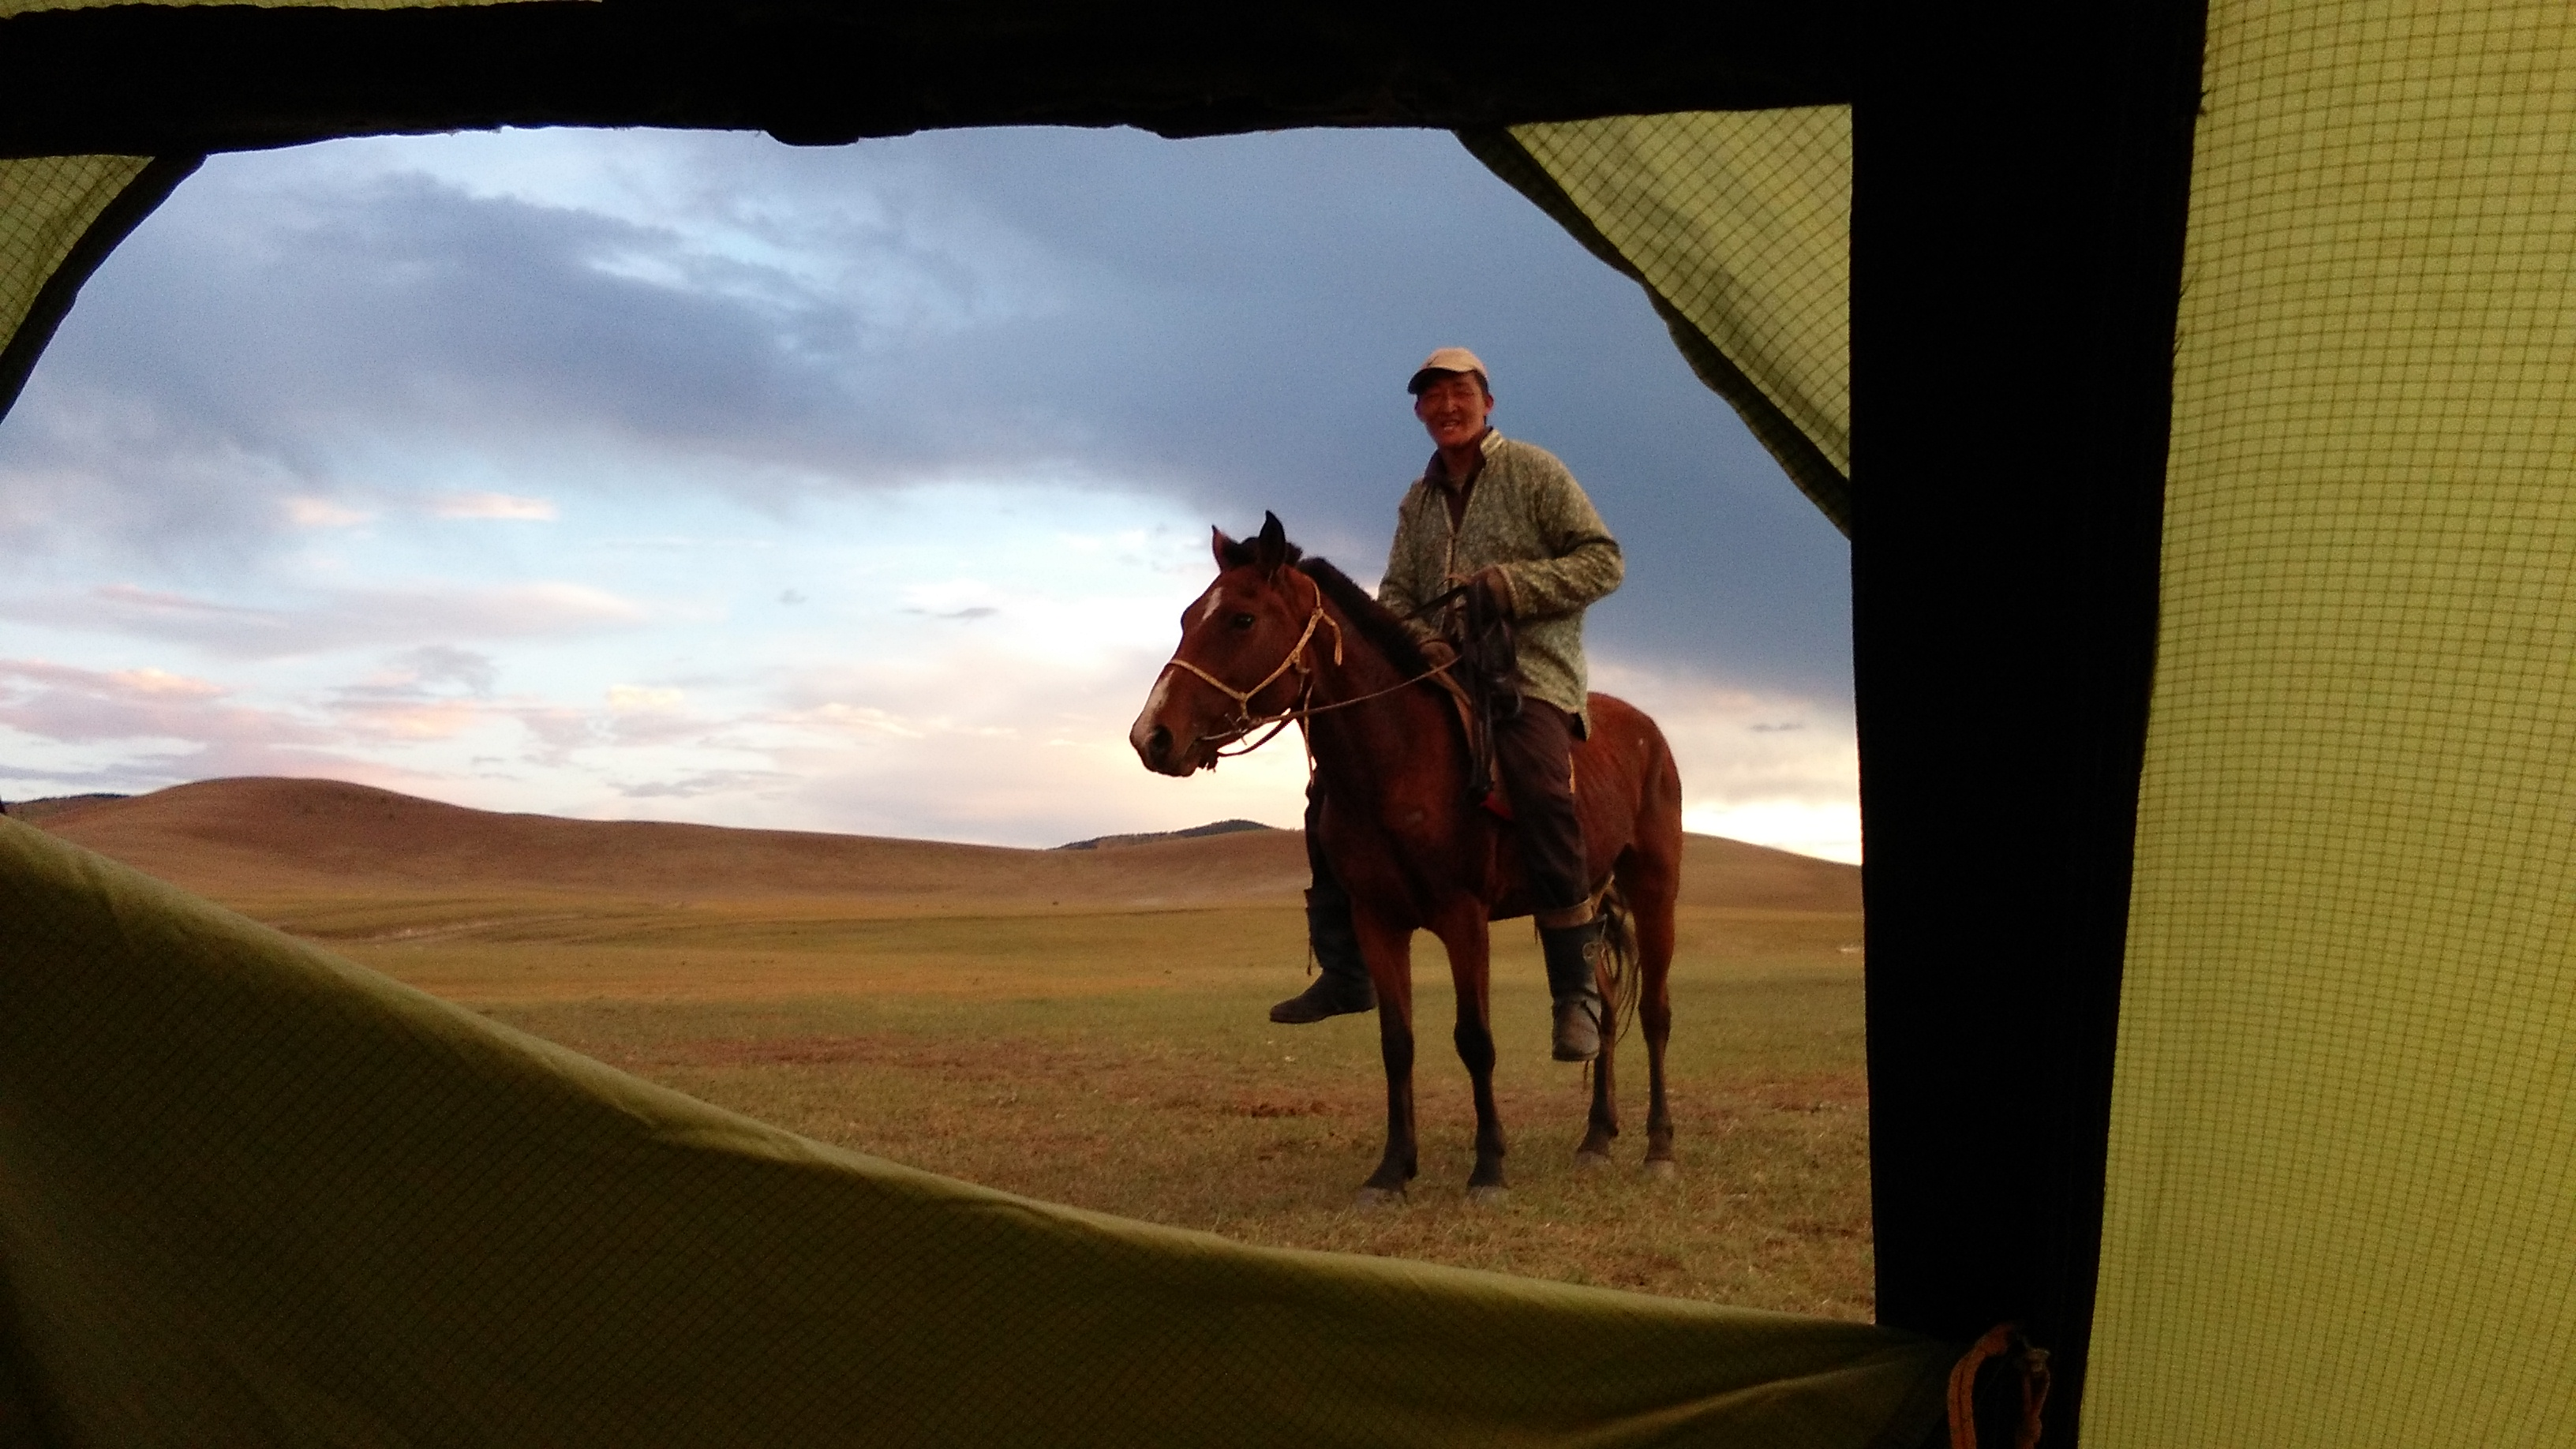 I love this picture - Mongolia